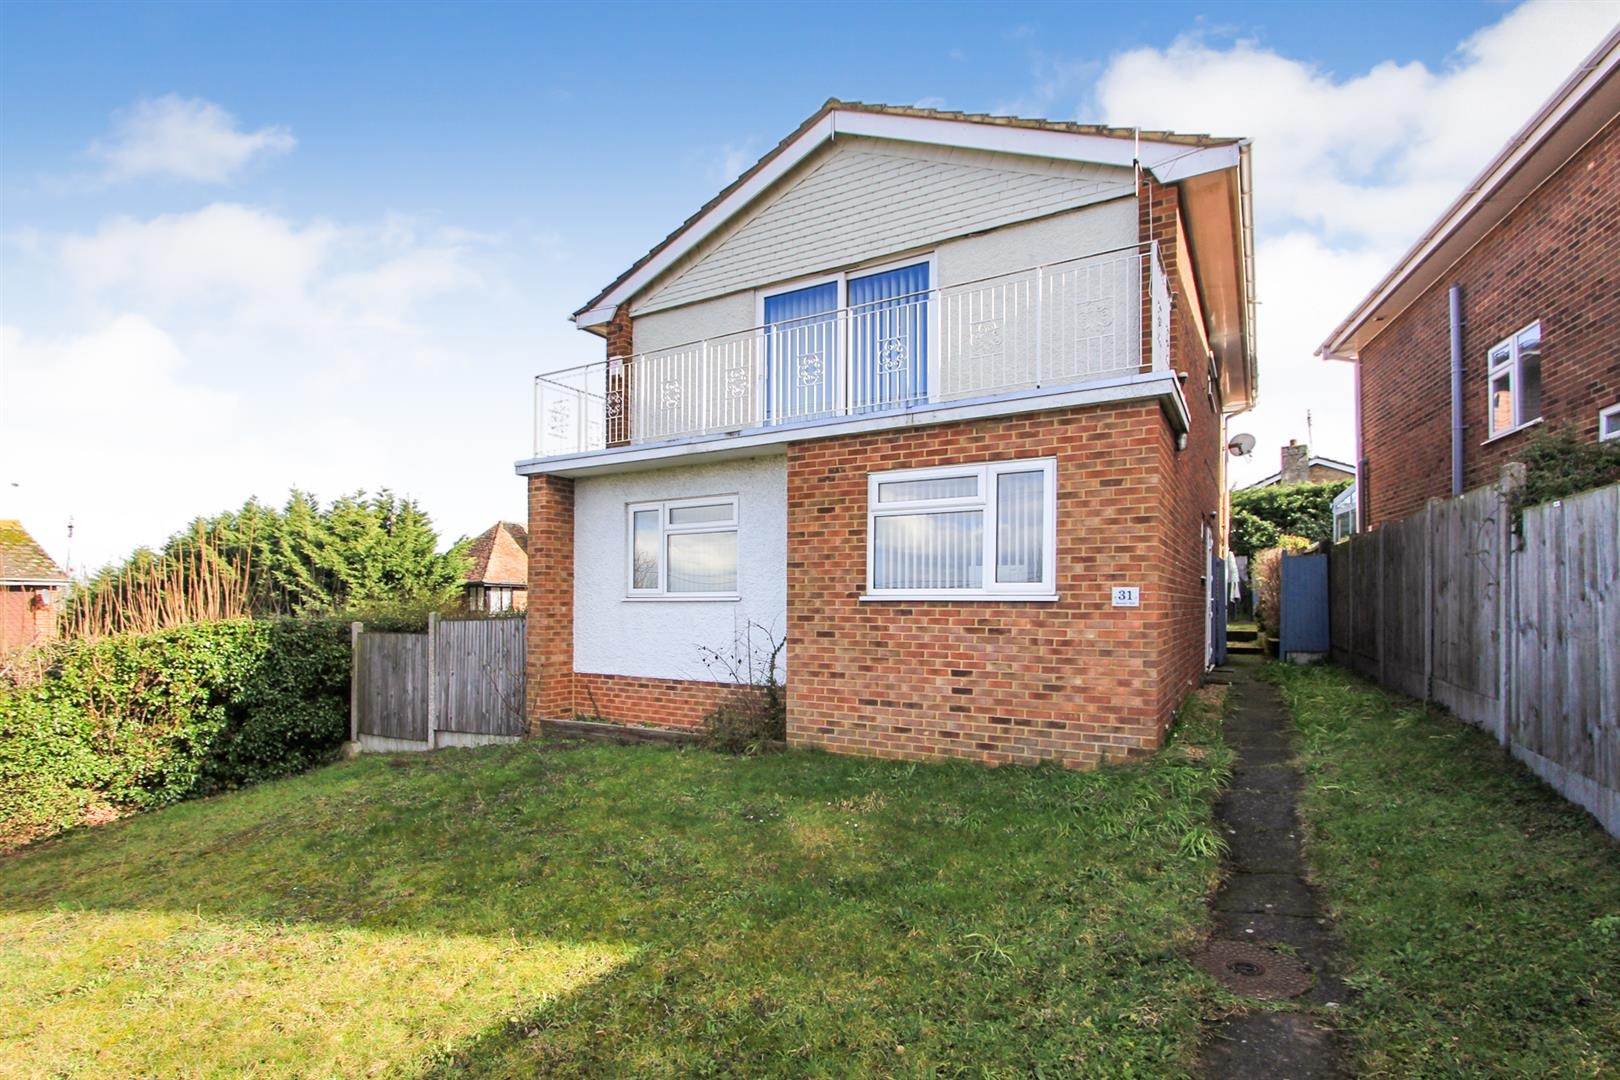 4 Bedrooms Detached House for sale in Borstal Hill, Whitstable